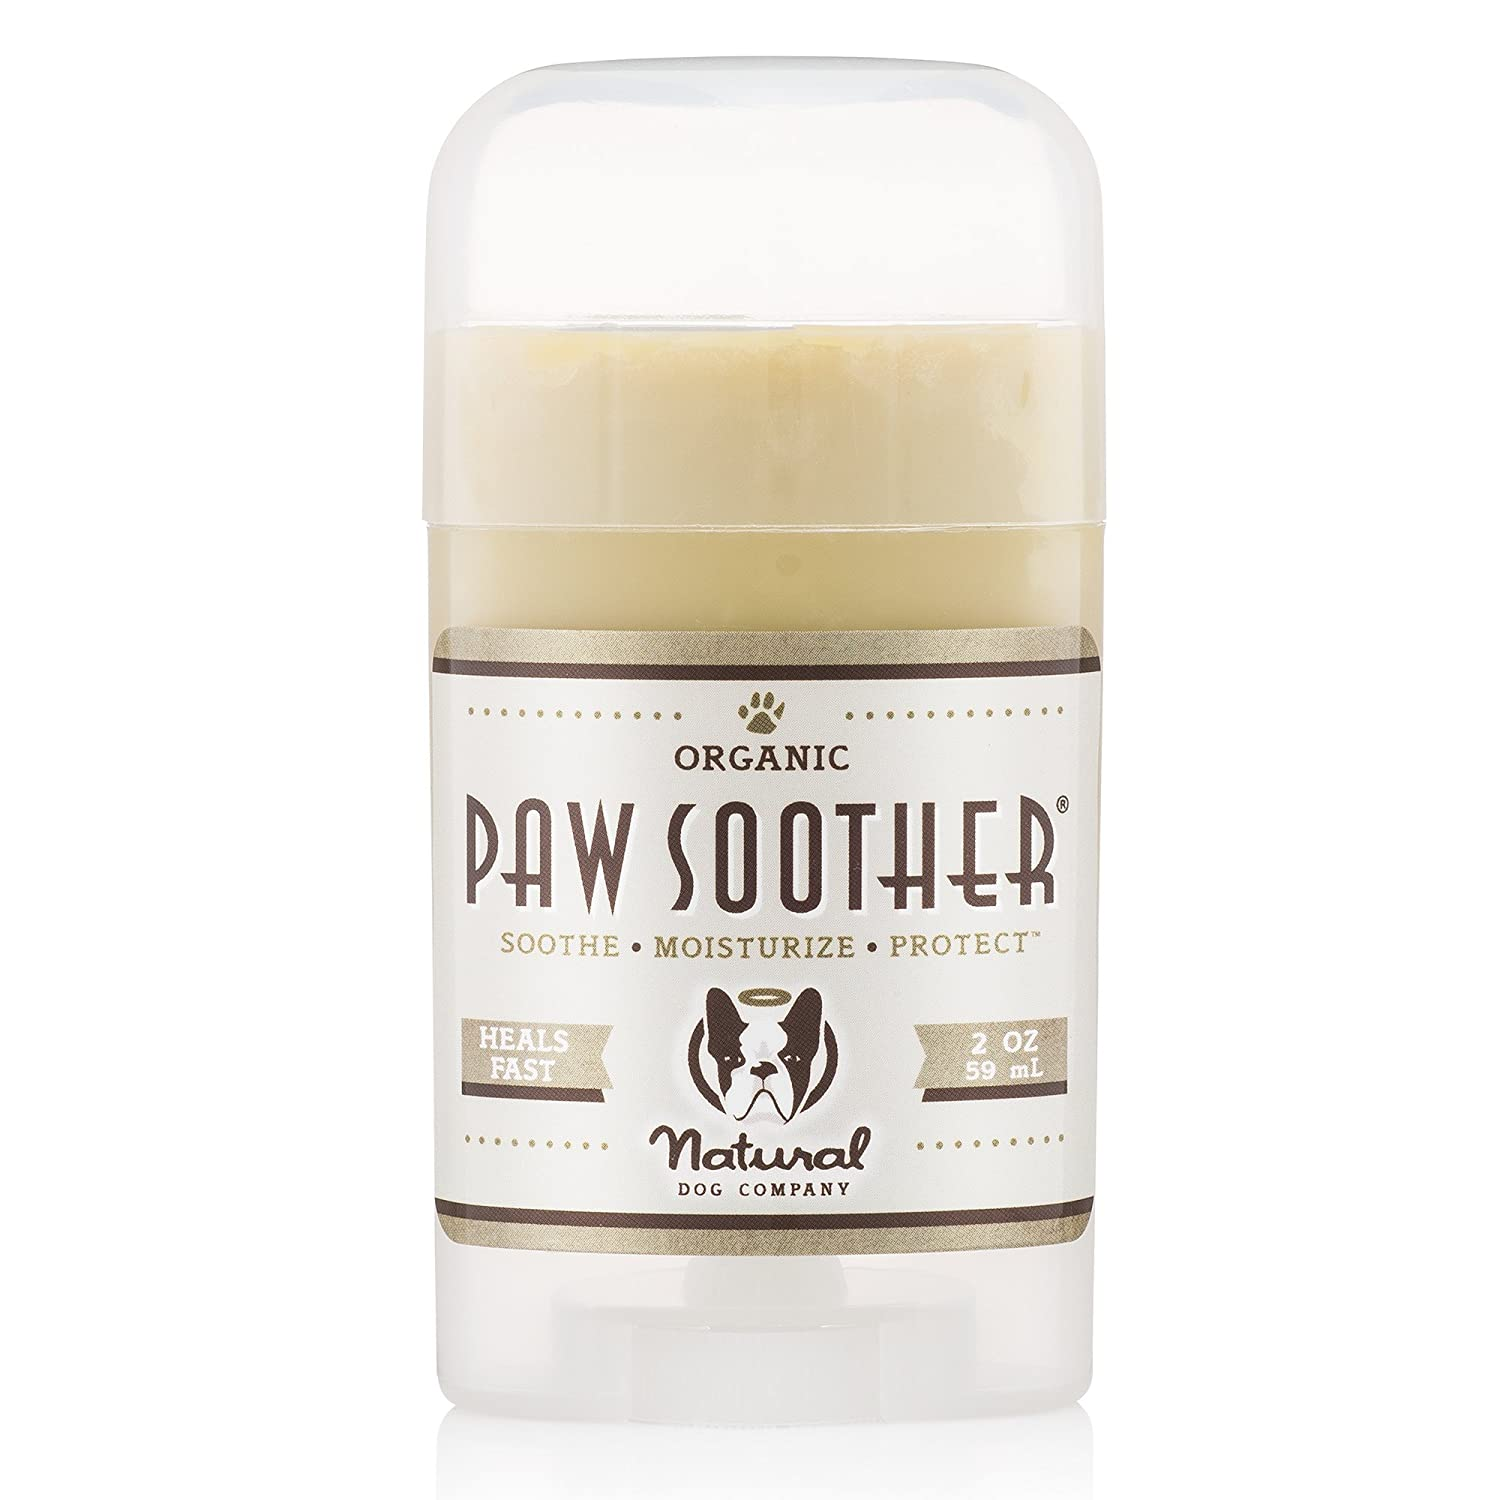 PAW SOOTHER